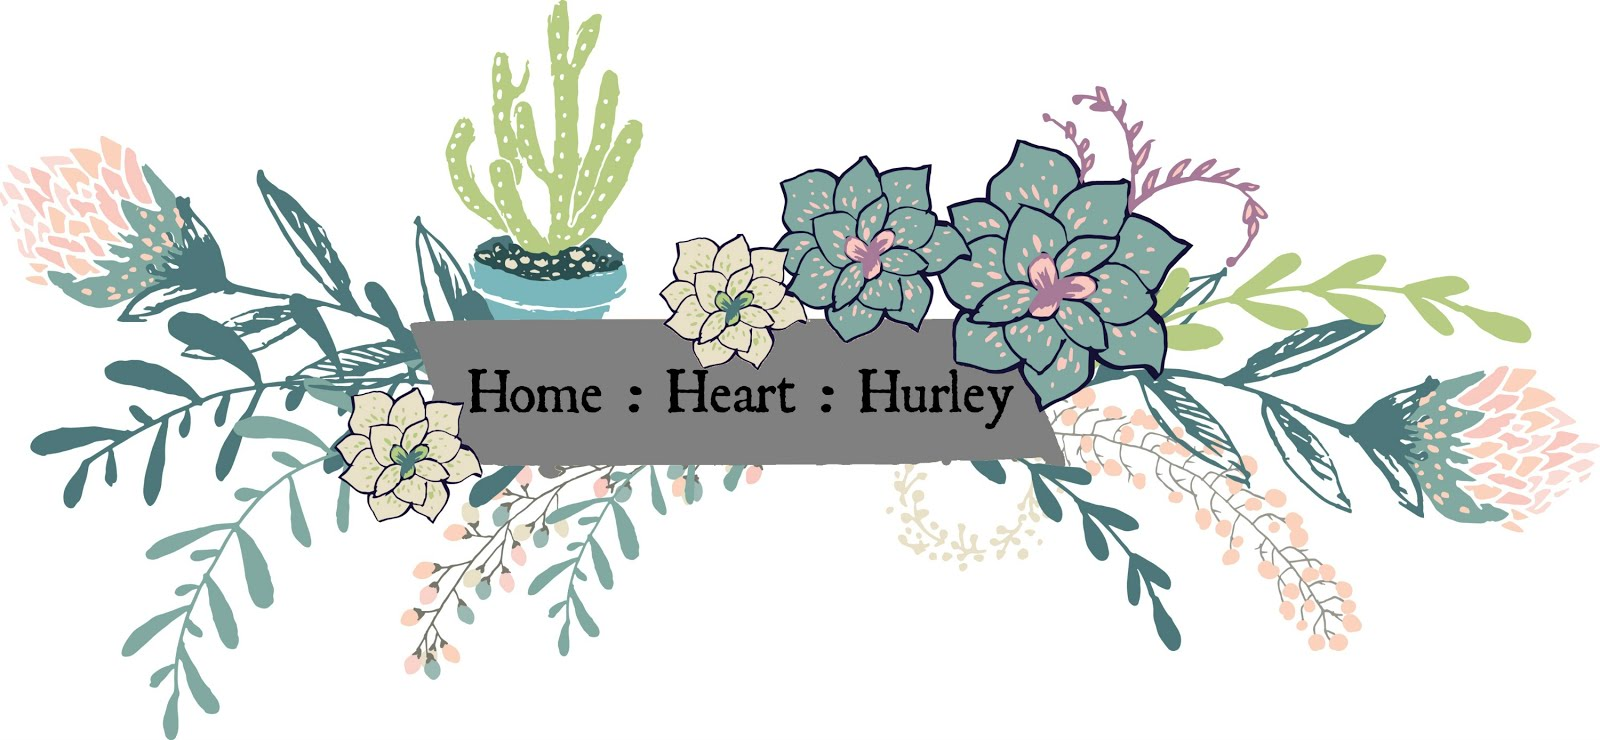 Home, Heart, Hurley